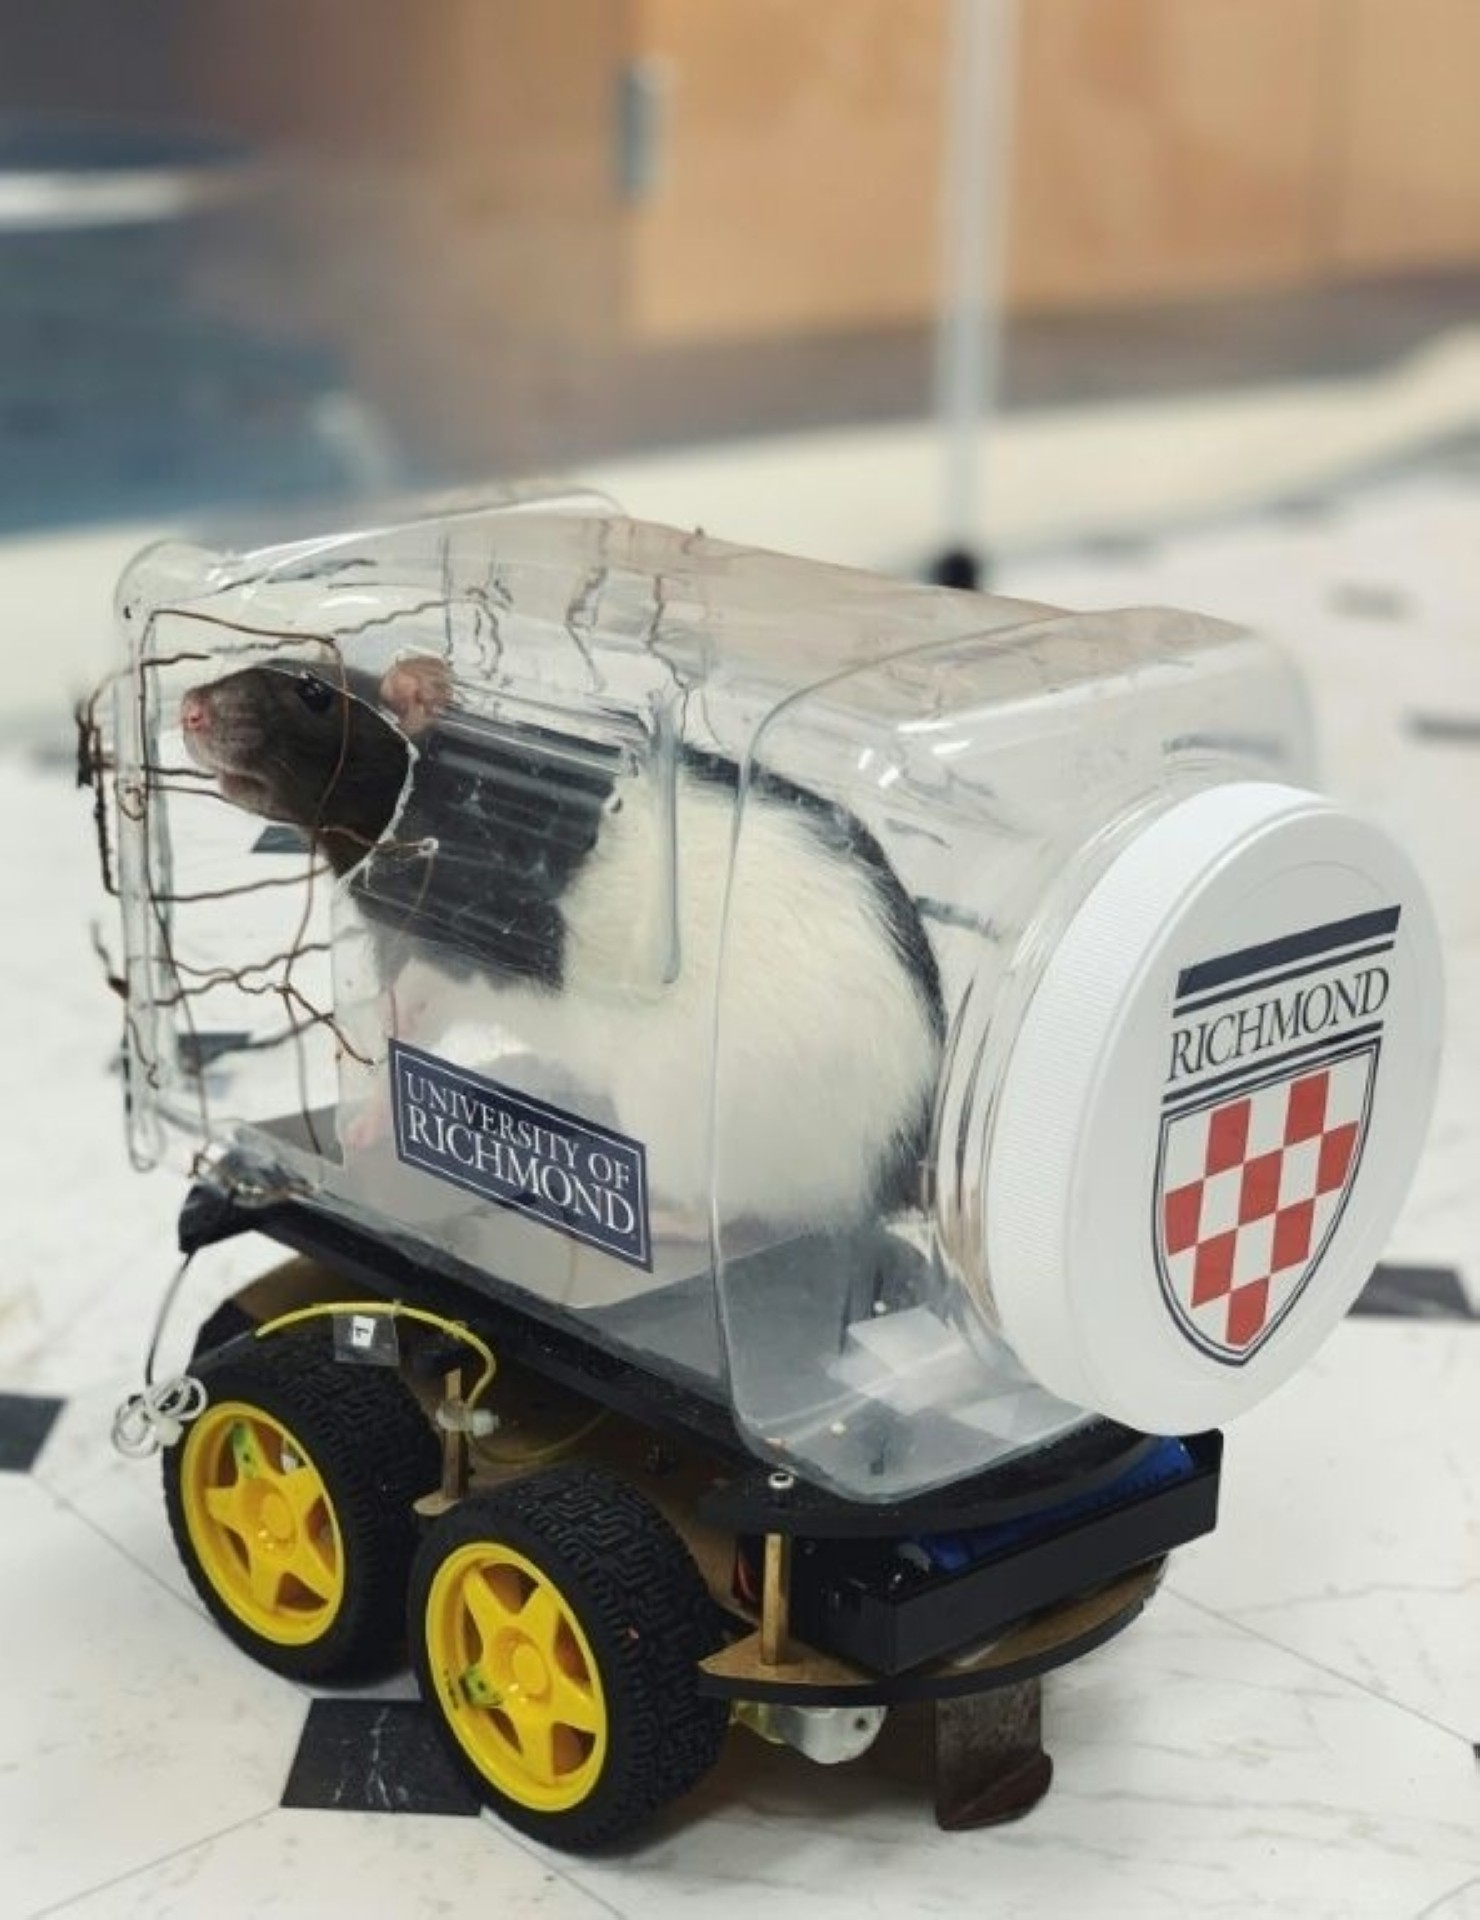 Scientists modified a robot car kit by adding a clear plastic food container to form a driver compartment with an aluminium plate placed on the bottom.